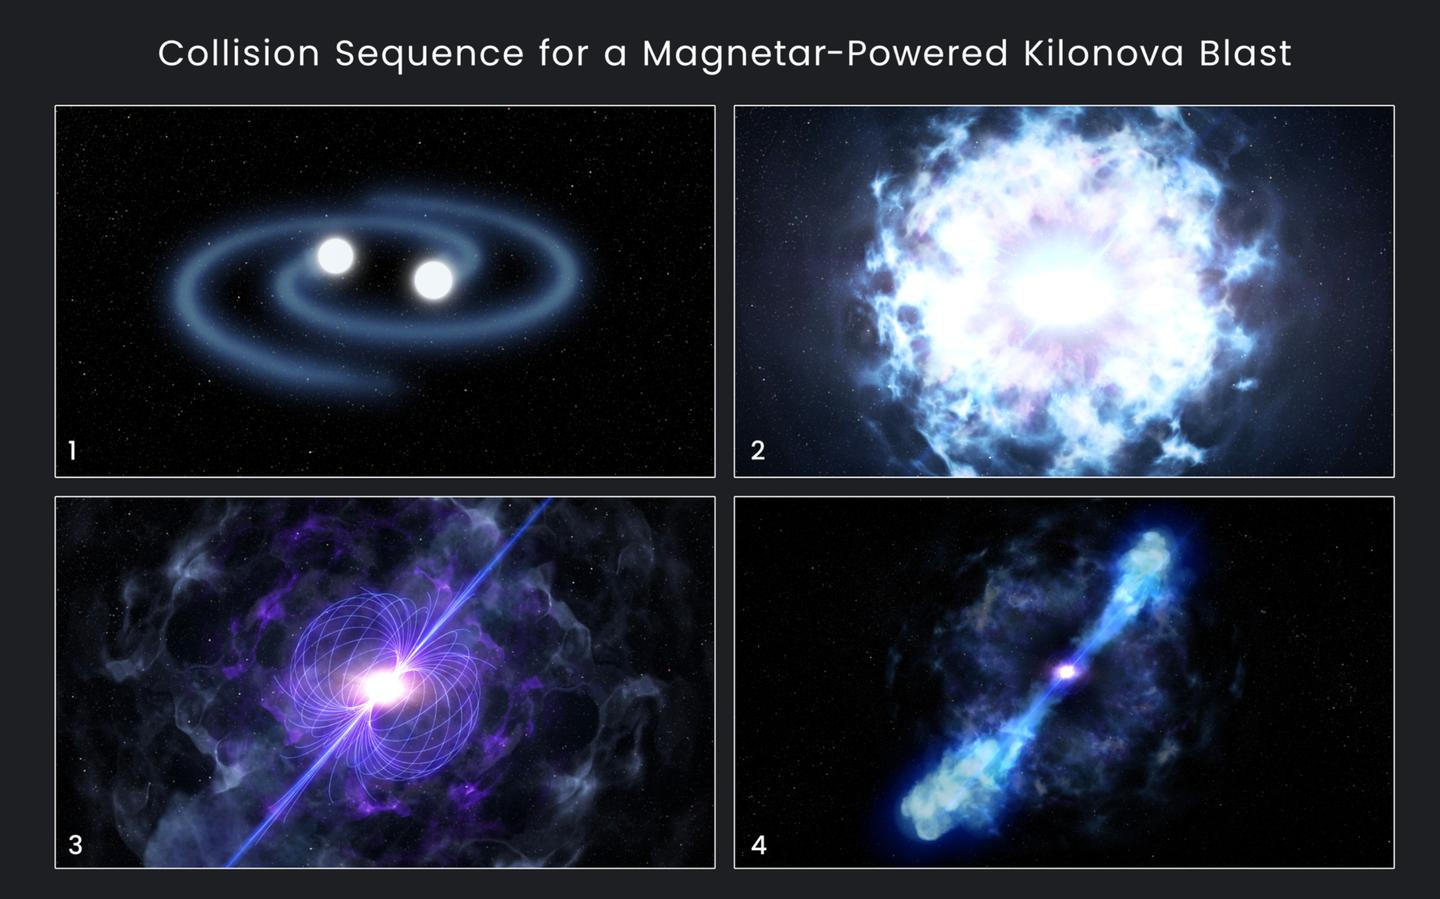 The sequence of the event that caused the gamma ray burst, showing neutron stars spiraling in, the collision and explosion, the formation of the magnetar, and the magnetar pumping energy into the ejected mass cloud